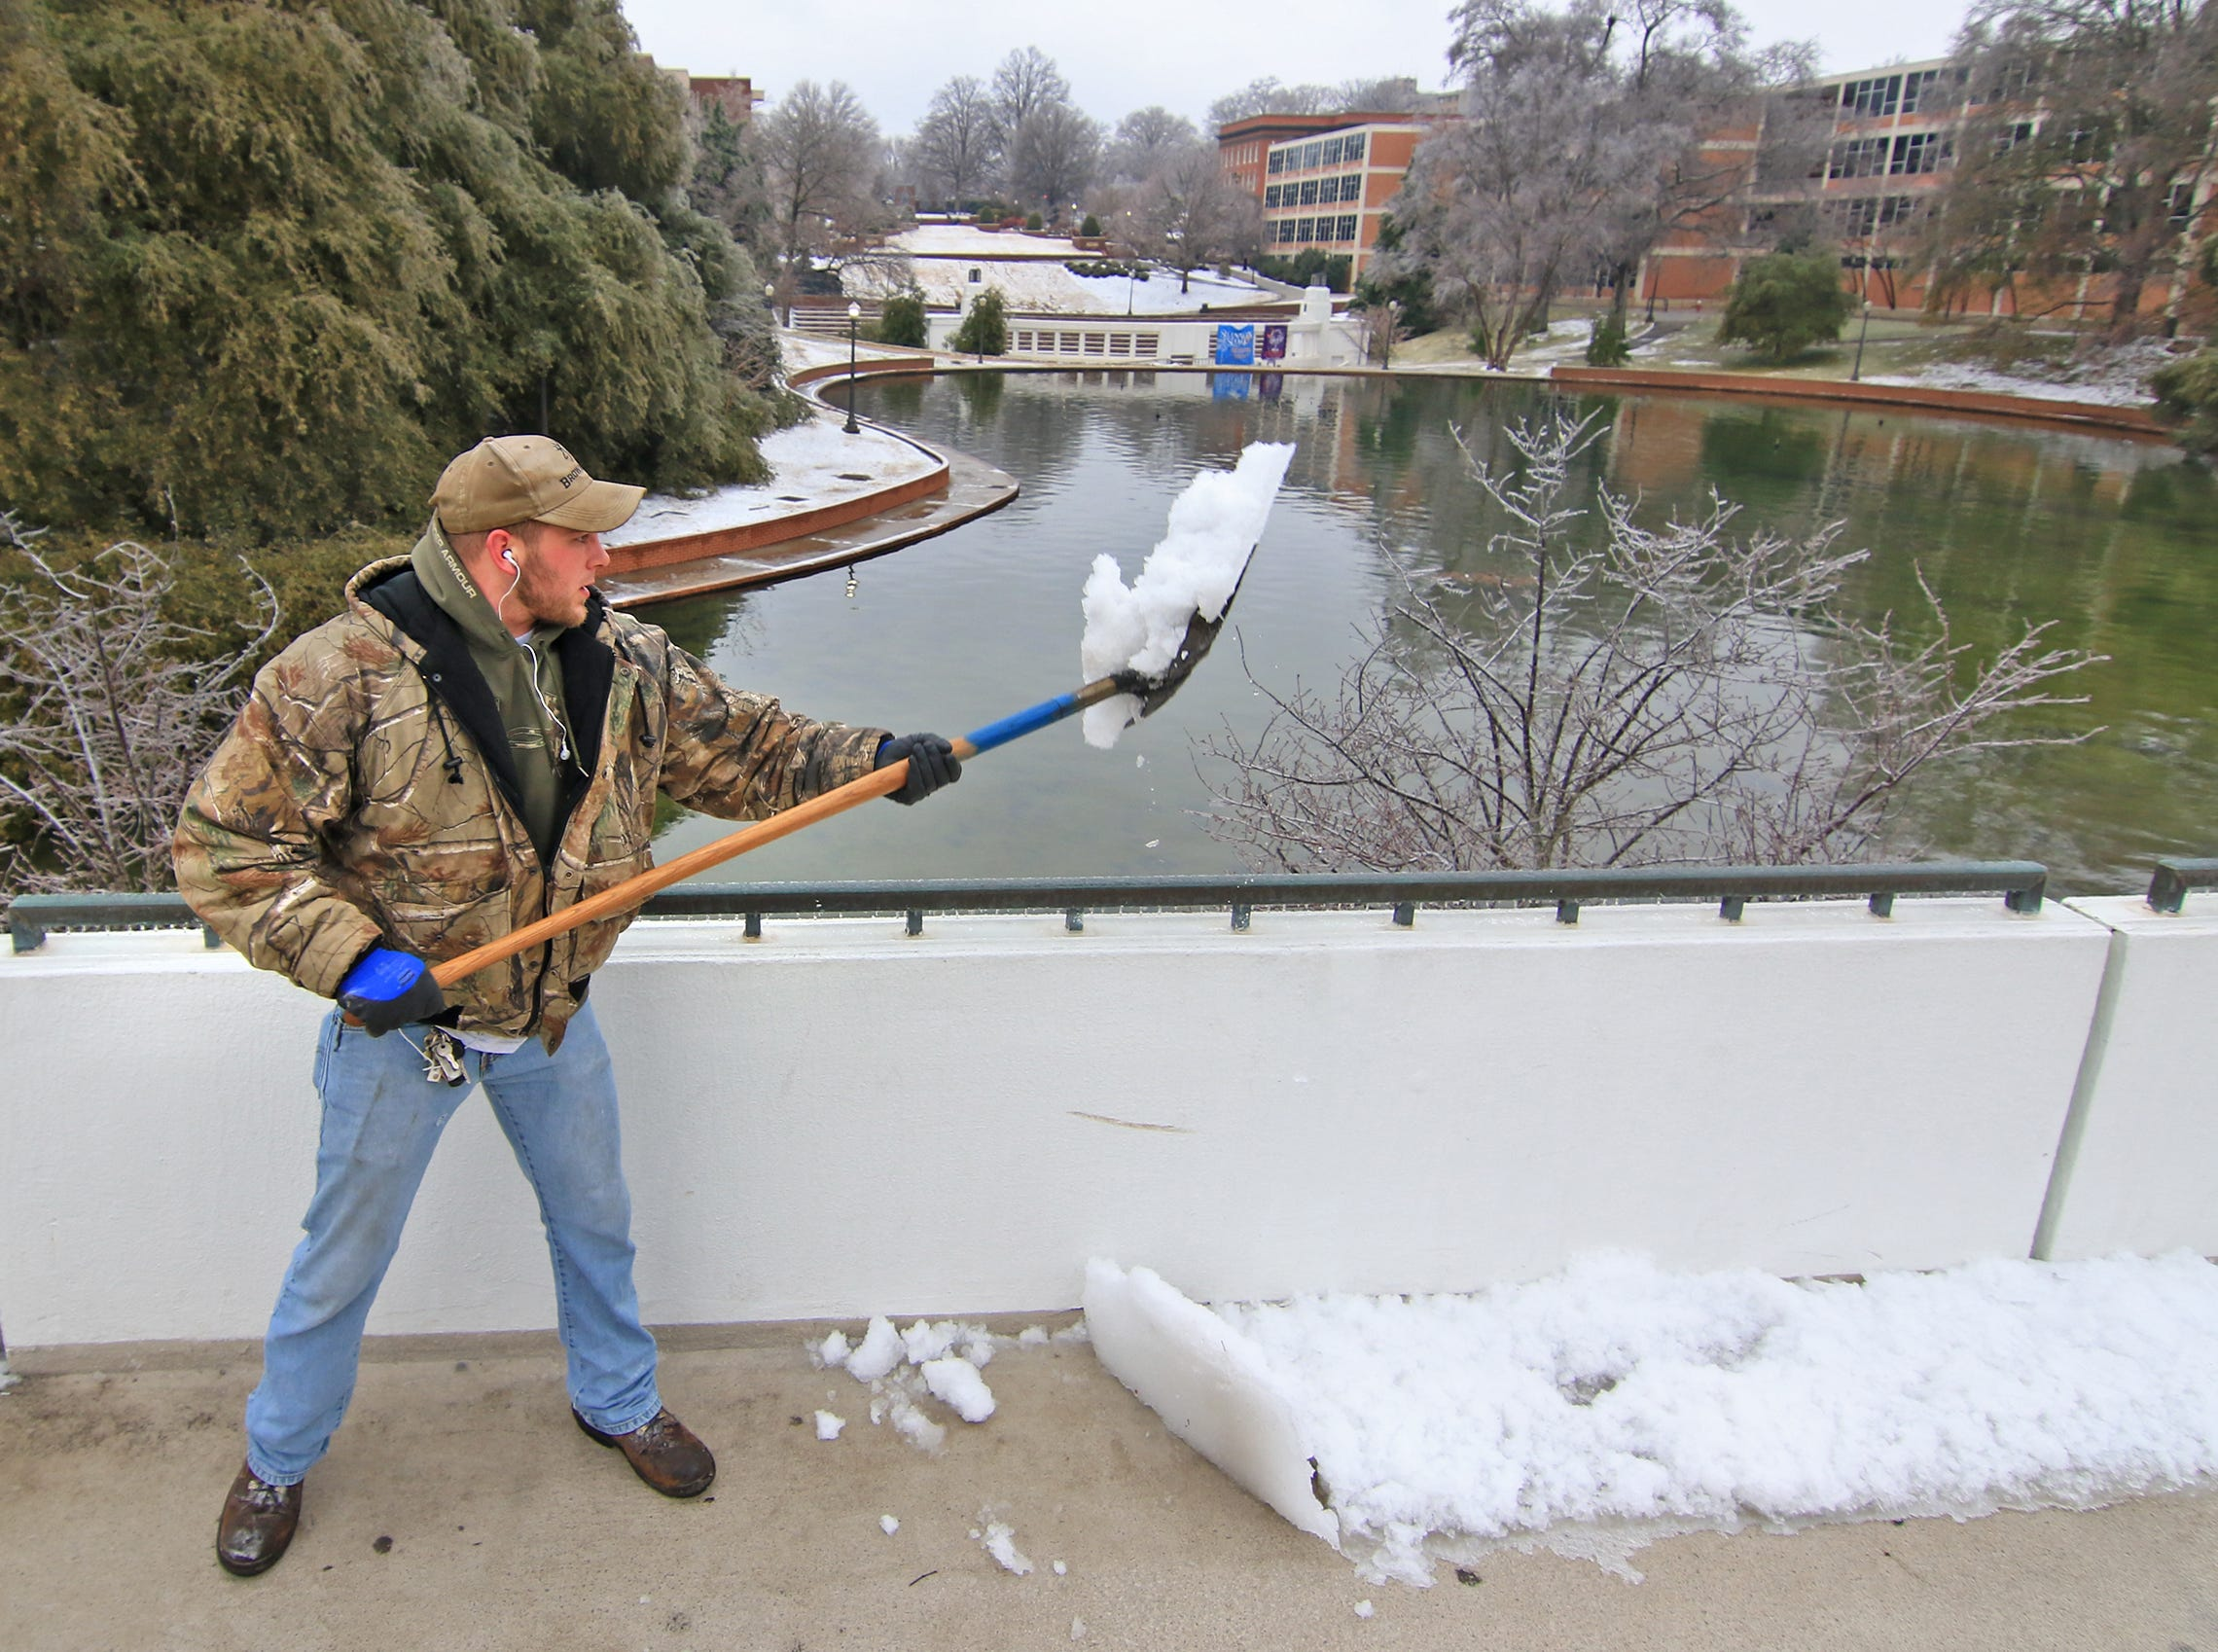 James Stewart of Clemson University grounds crew shovels snow off the bridge in front of Cooper Library. Classes resumed at 12:30 p.m. Tuesday after a weather delay in 2015.